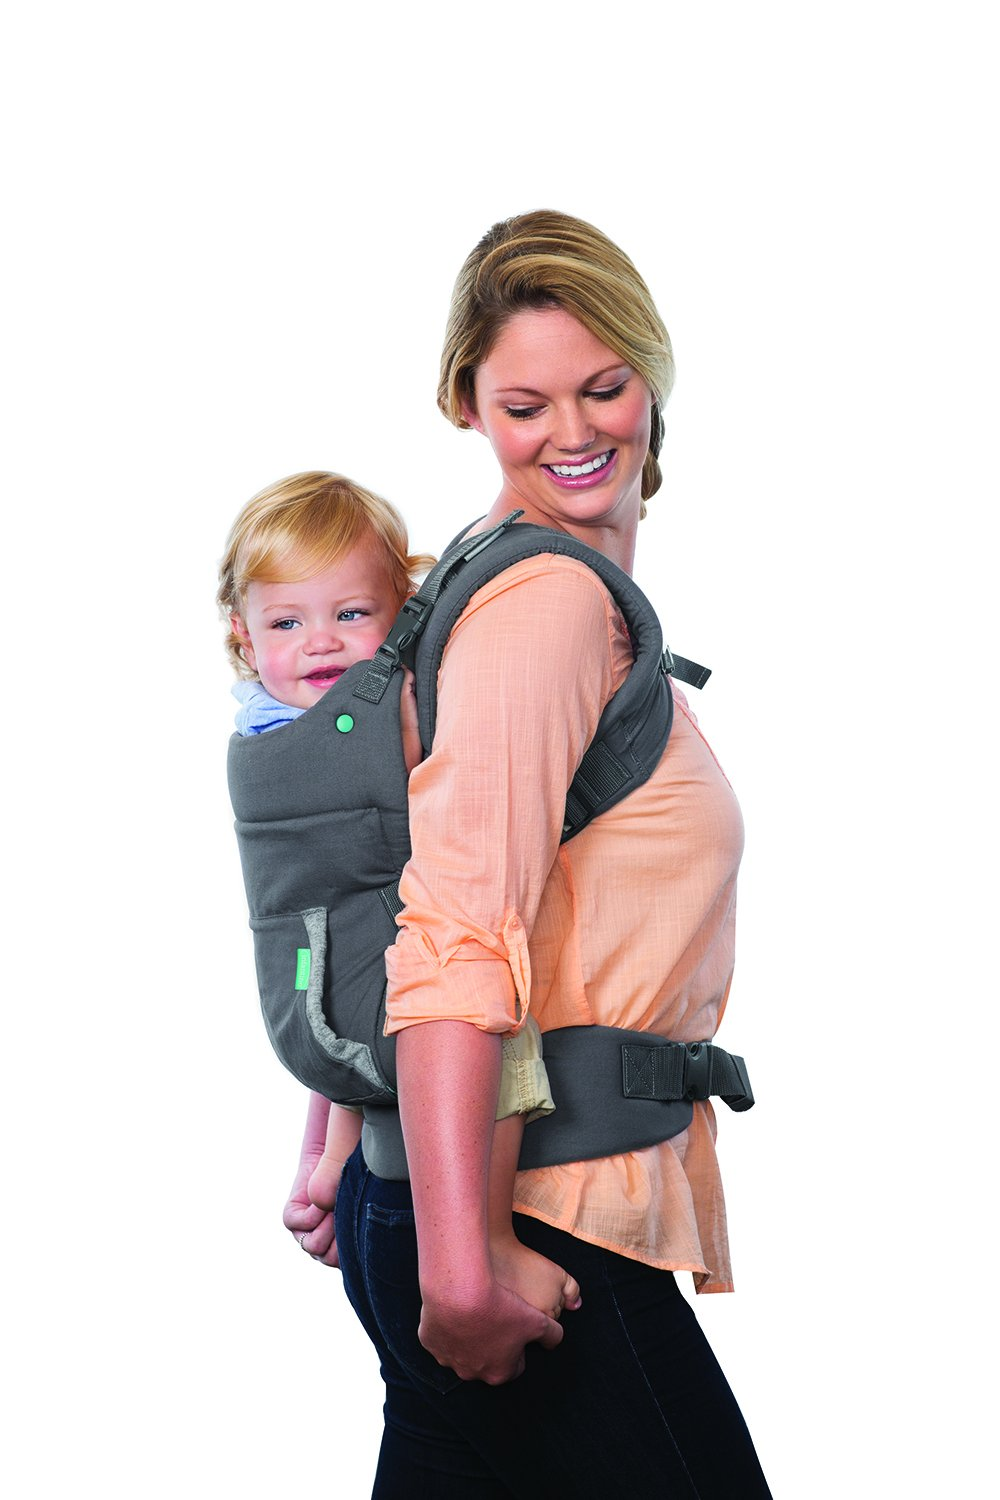 Infantino Cuddle Up Ergonomic Hoodie Carrier, Grey Infantino Fully safety tested Carries children from 12-40lbs (5.4 - 18.1 kgs) 7